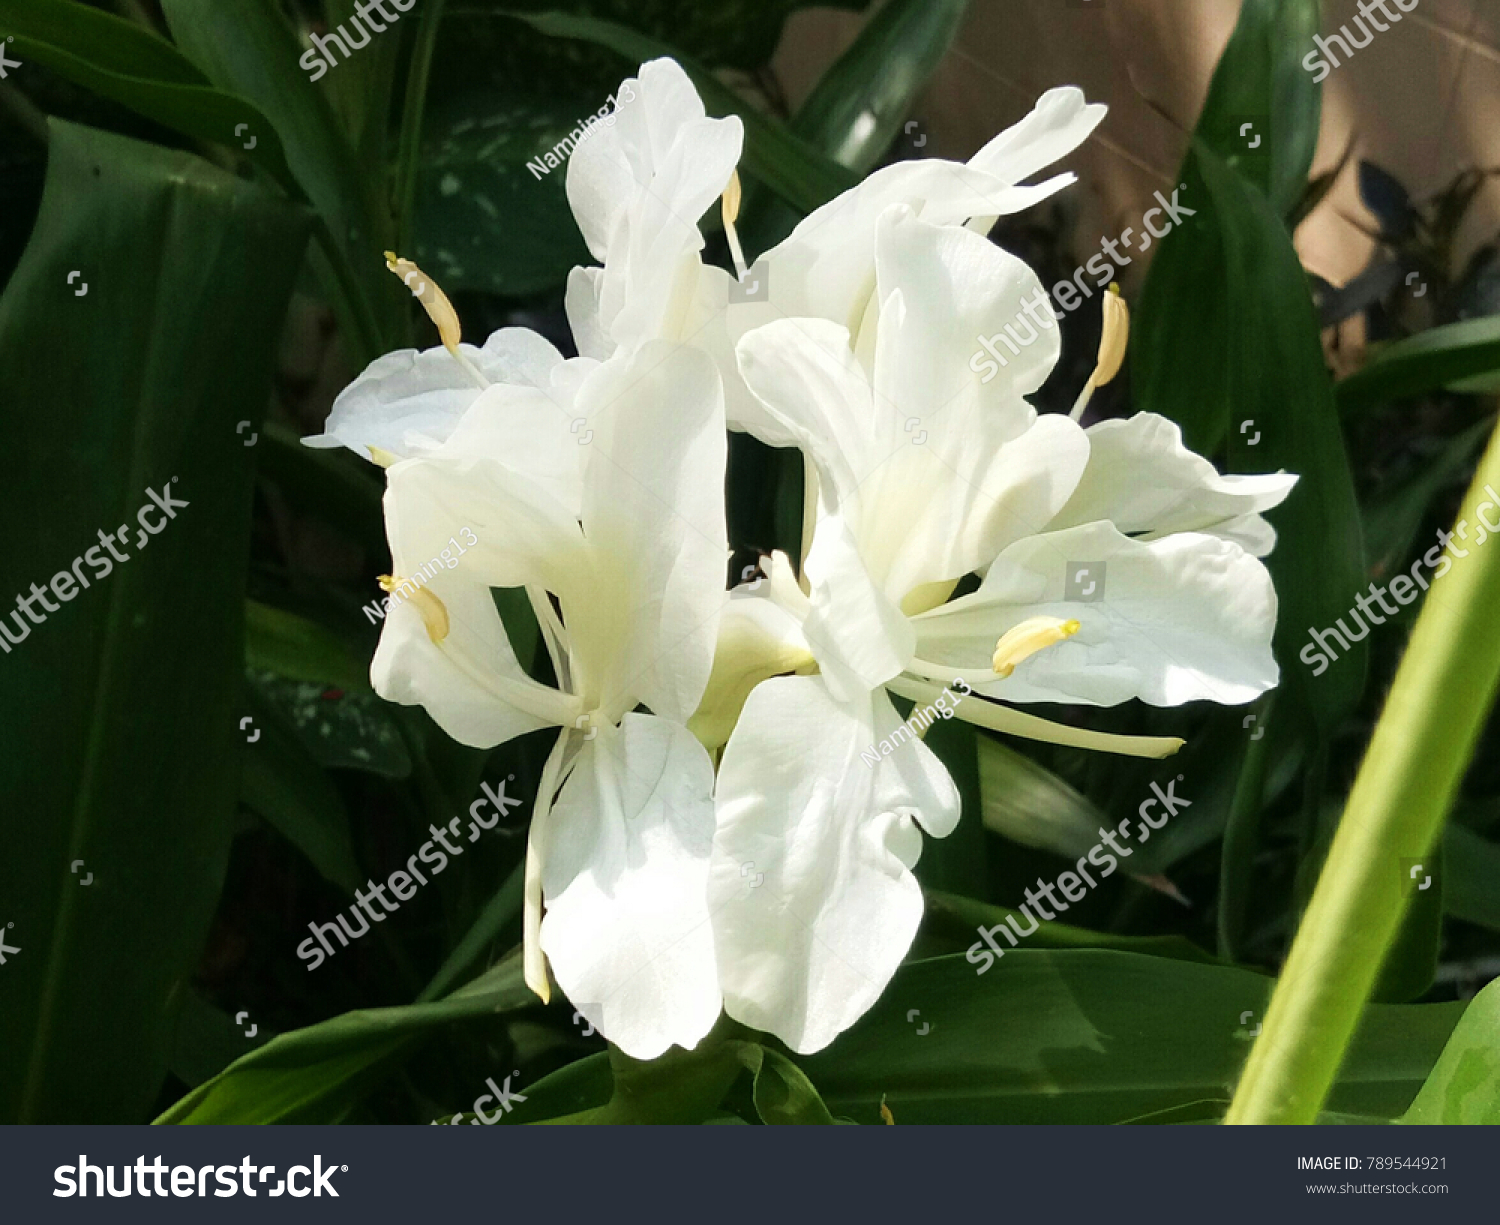 Iris florentina white flowered variant iris stock photo edit now iris florentina is the white flowered variant of iris germanica now classified as iris germanica nothovar izmirmasajfo